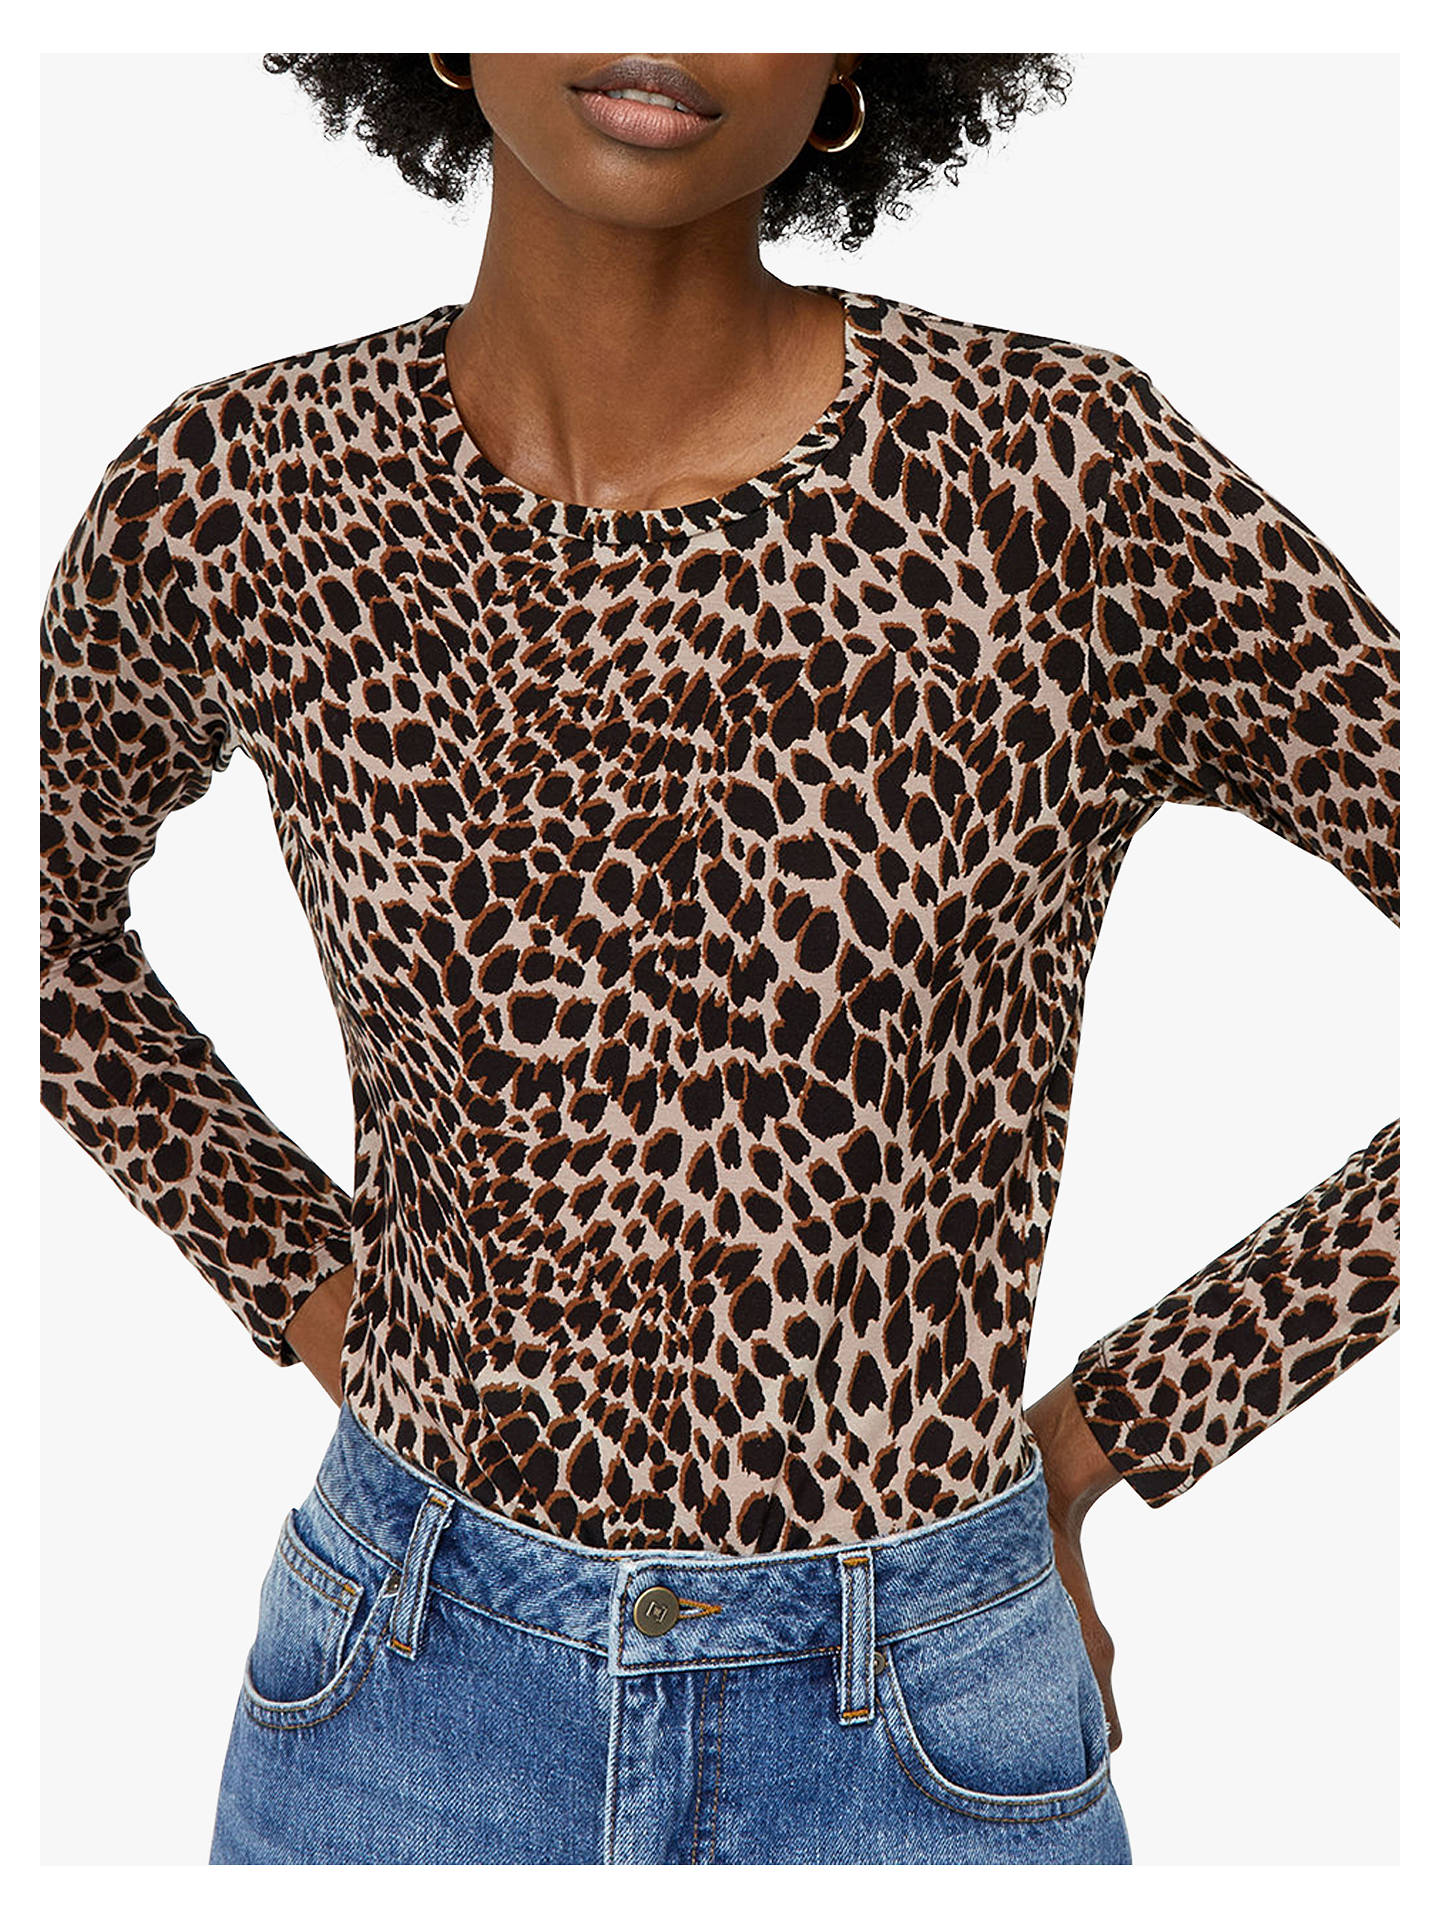 24e086ed1bbb Buy Warehouse Round Neck Leopard Print Top, Multi, 14 Online at  johnlewis.com ...